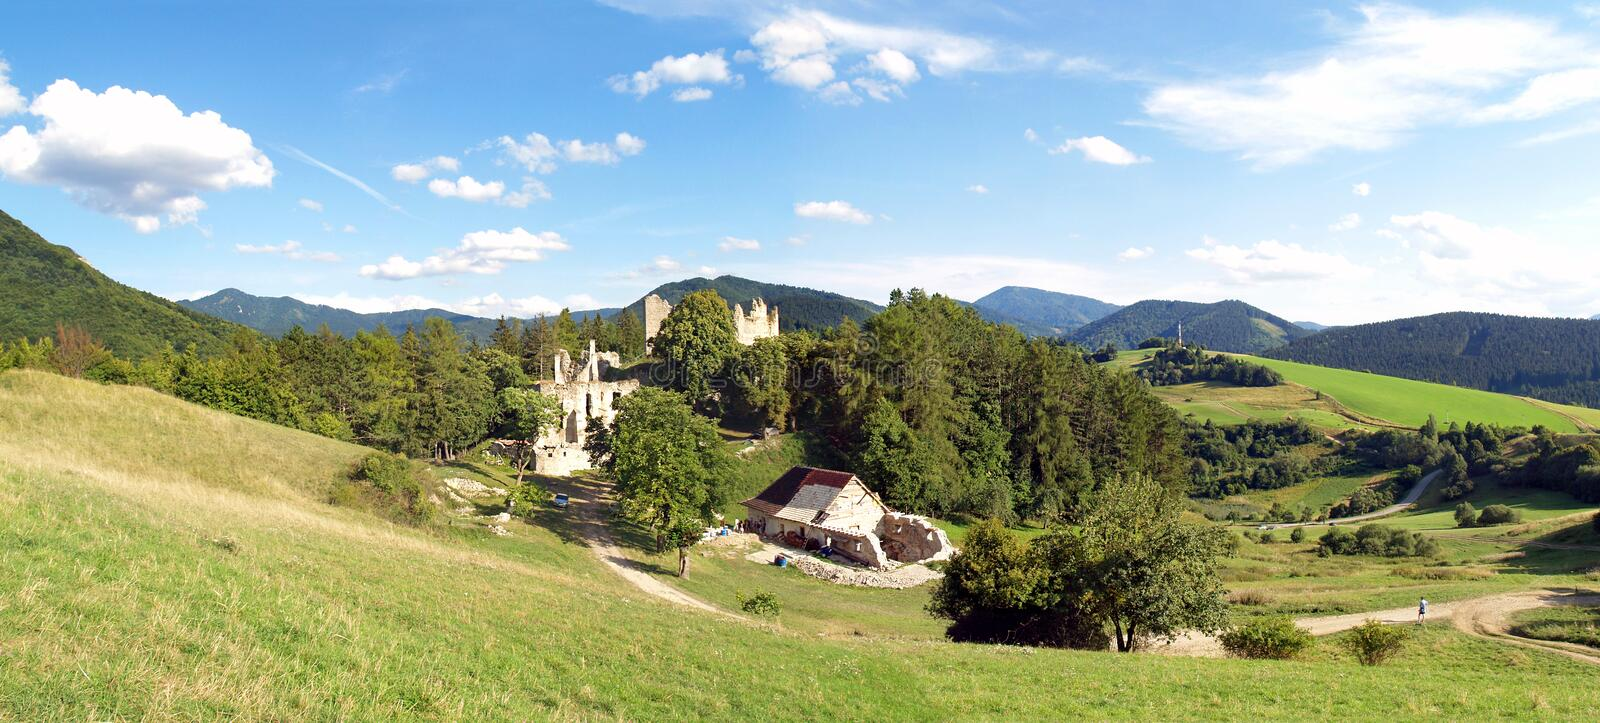 Sklabina Castle, Turiec region, Slovakia. Summer panorama portraying landscape with remains of Sklabina Castle being archaeologically reconstructed and preserved stock photo